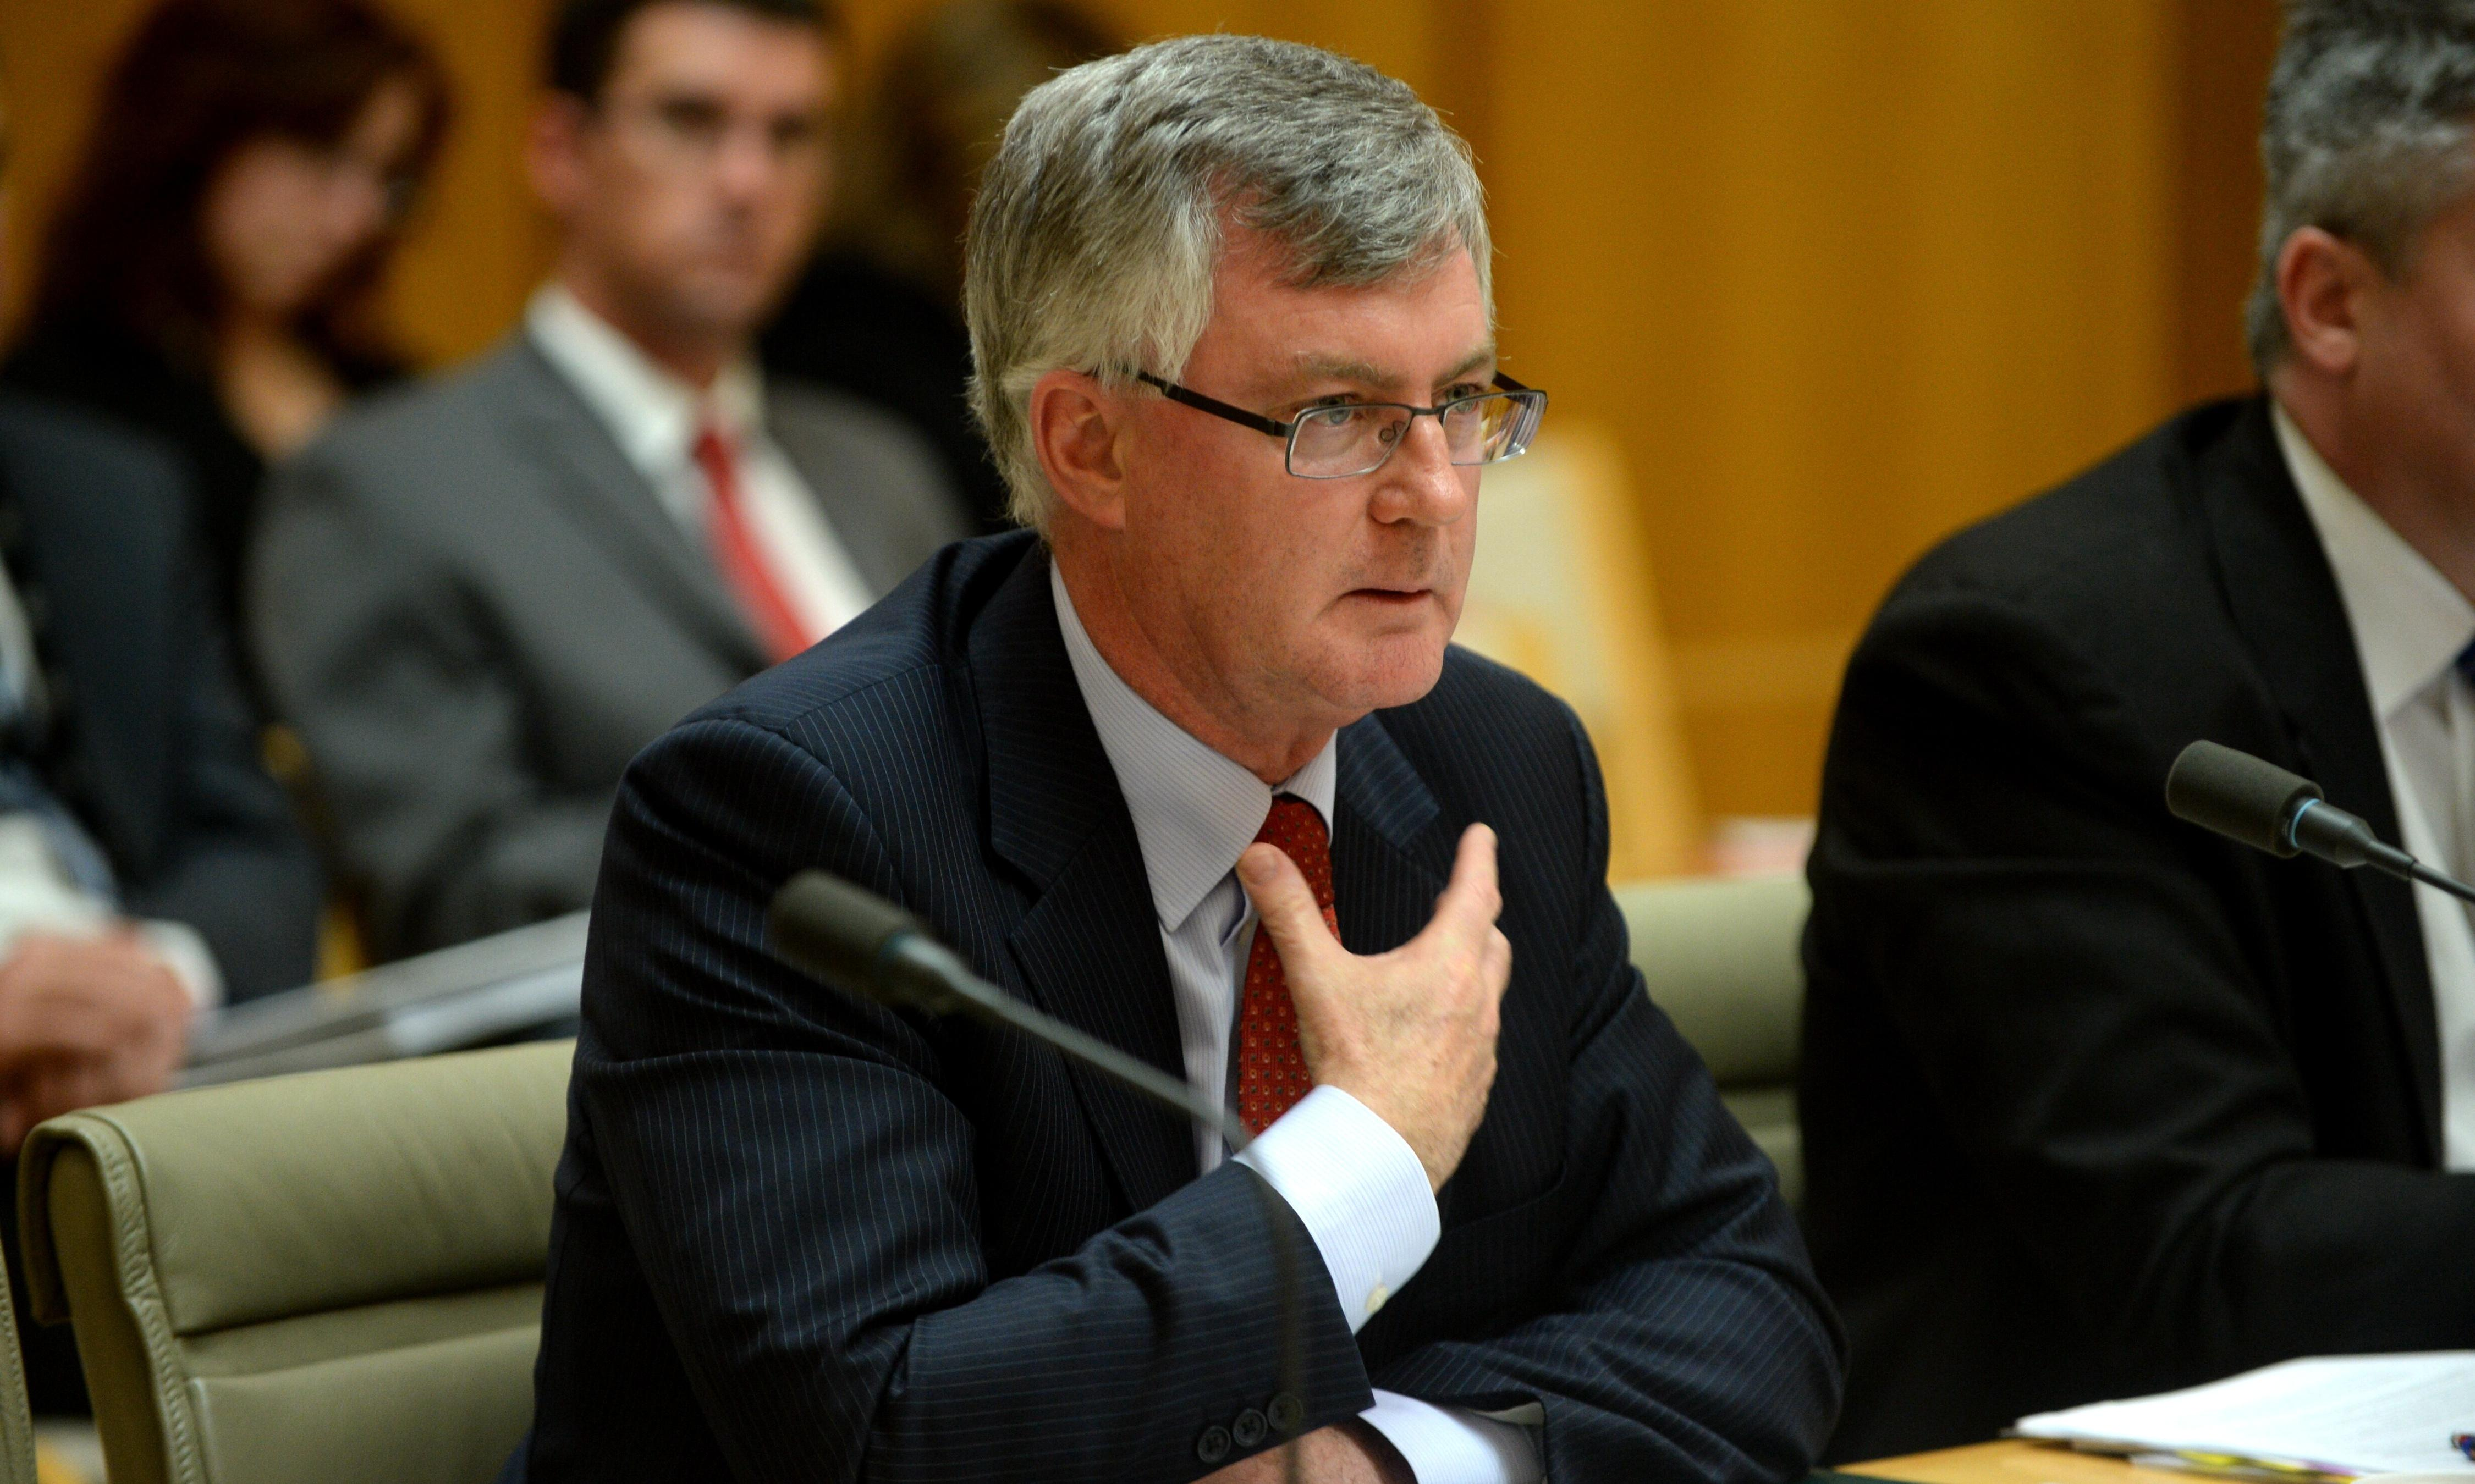 'Pub test' gets Pythonesque as Martin Parkinson grilled over Pyne and Bishop's jobs